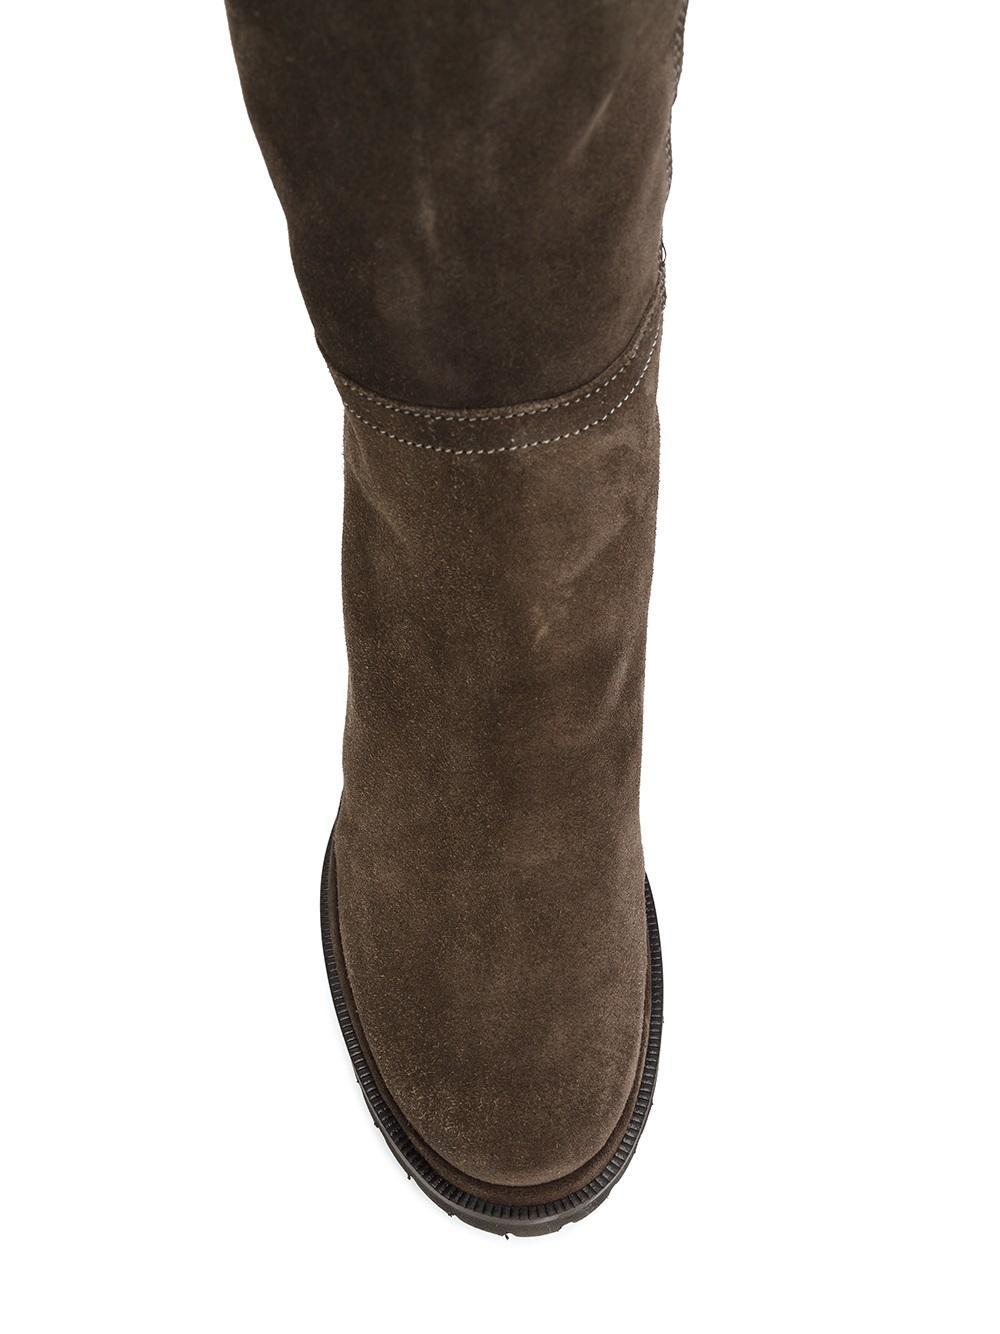 Chuckies New York Suede Wedge Knee High Boots in Brown